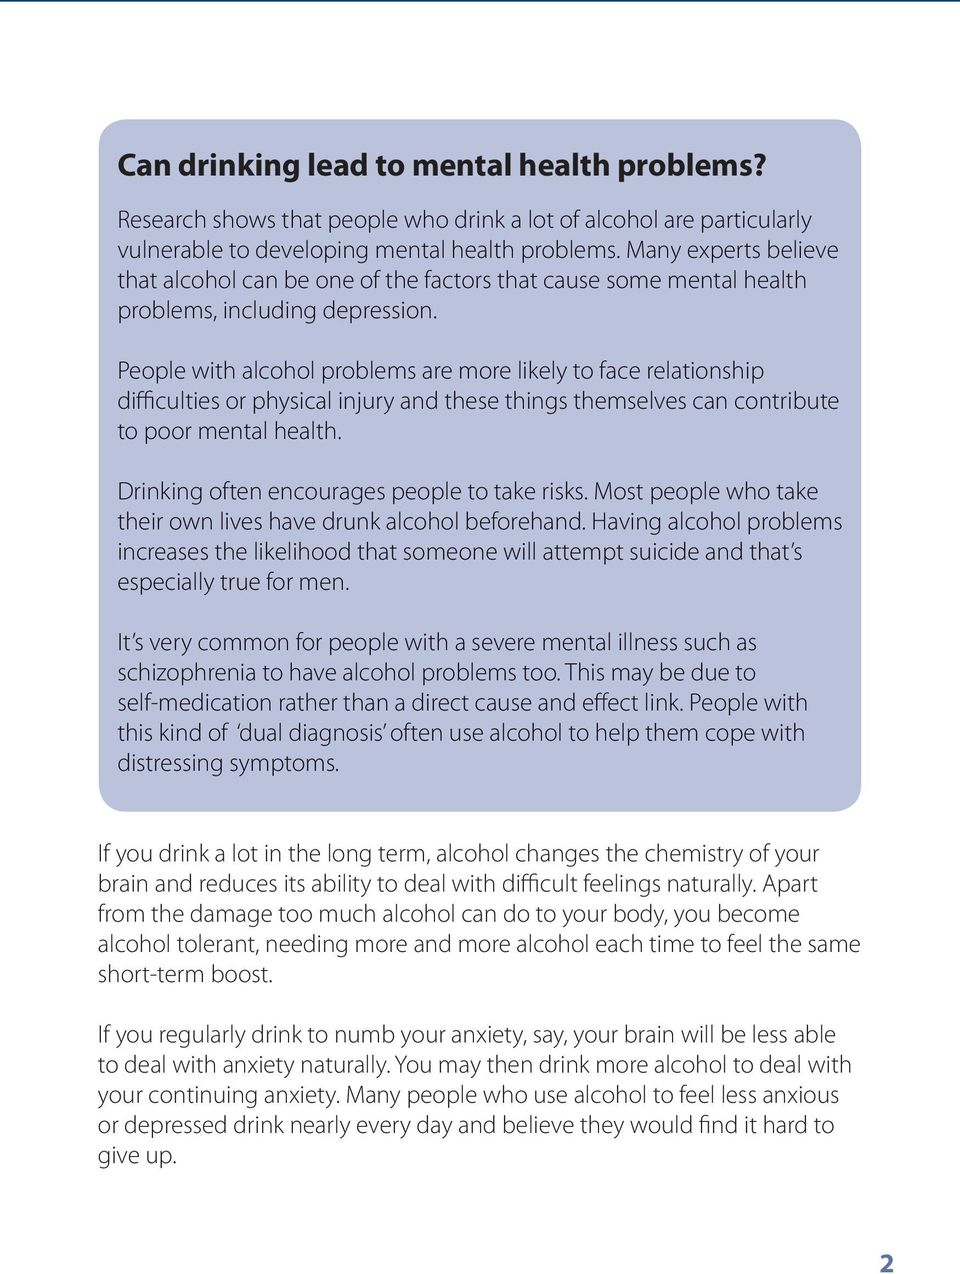 People with alcohol problems are more likely to face relationship difficulties or physical injury and these things themselves can contribute to poor mental health.